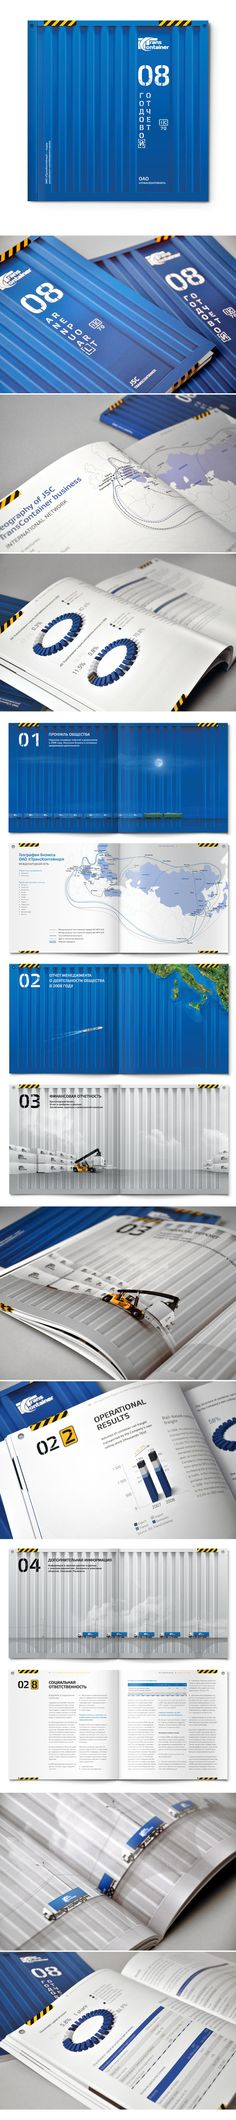 http://dzineblog.com/wp-content/uploads/2011/02/annual-report-design-transcontainer-1.jpg